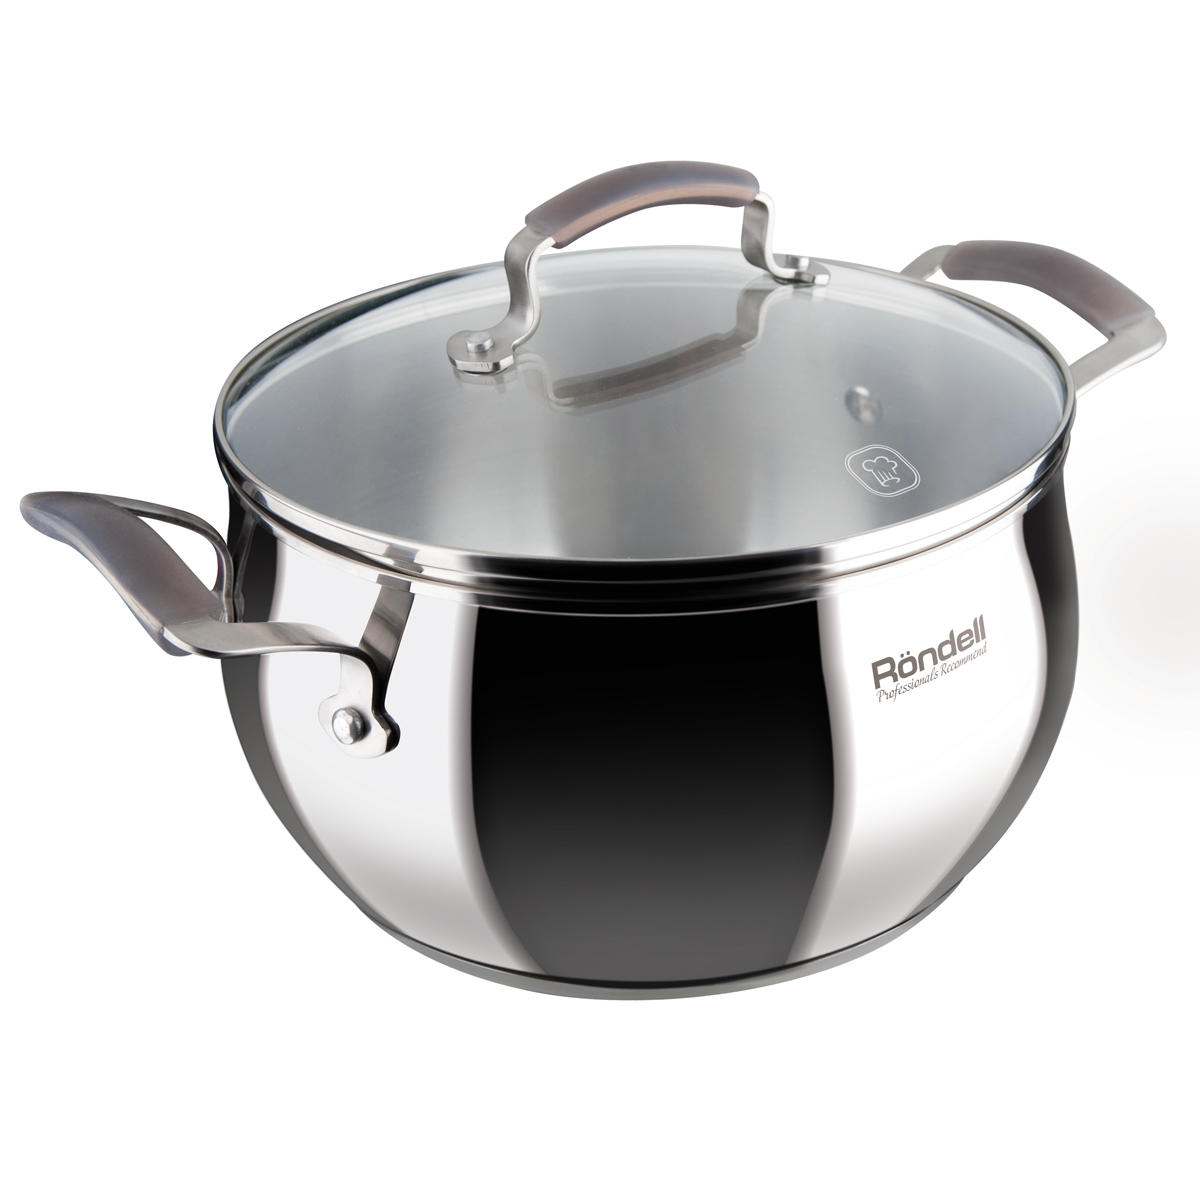 Saucepan with lid RONDELL RDS-733 (Diameter 20 cm, volume 3.8 L, high quality stainless steel, cover of heat-resistant glass, internal Mark литража, suitable for all types of plates) heat resistant esprao firme 24 cm